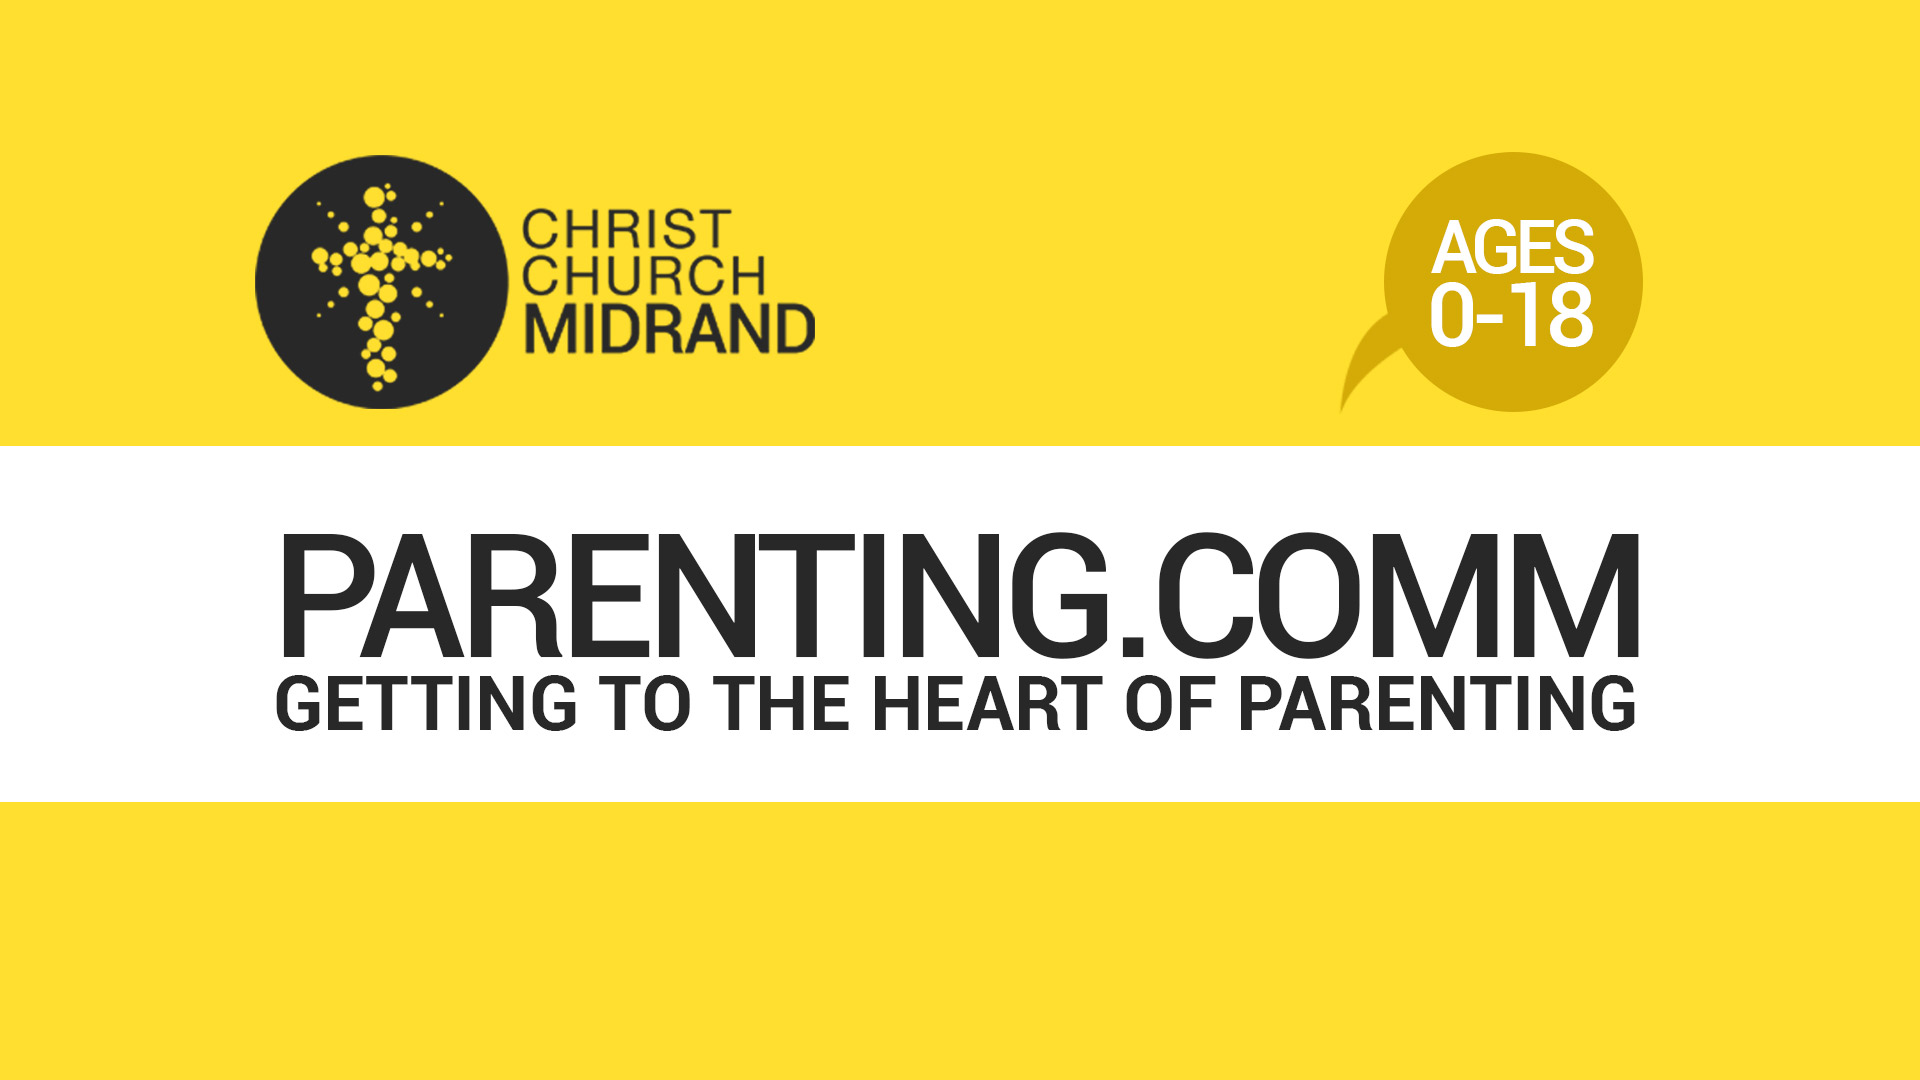 Parenting.comm website advert